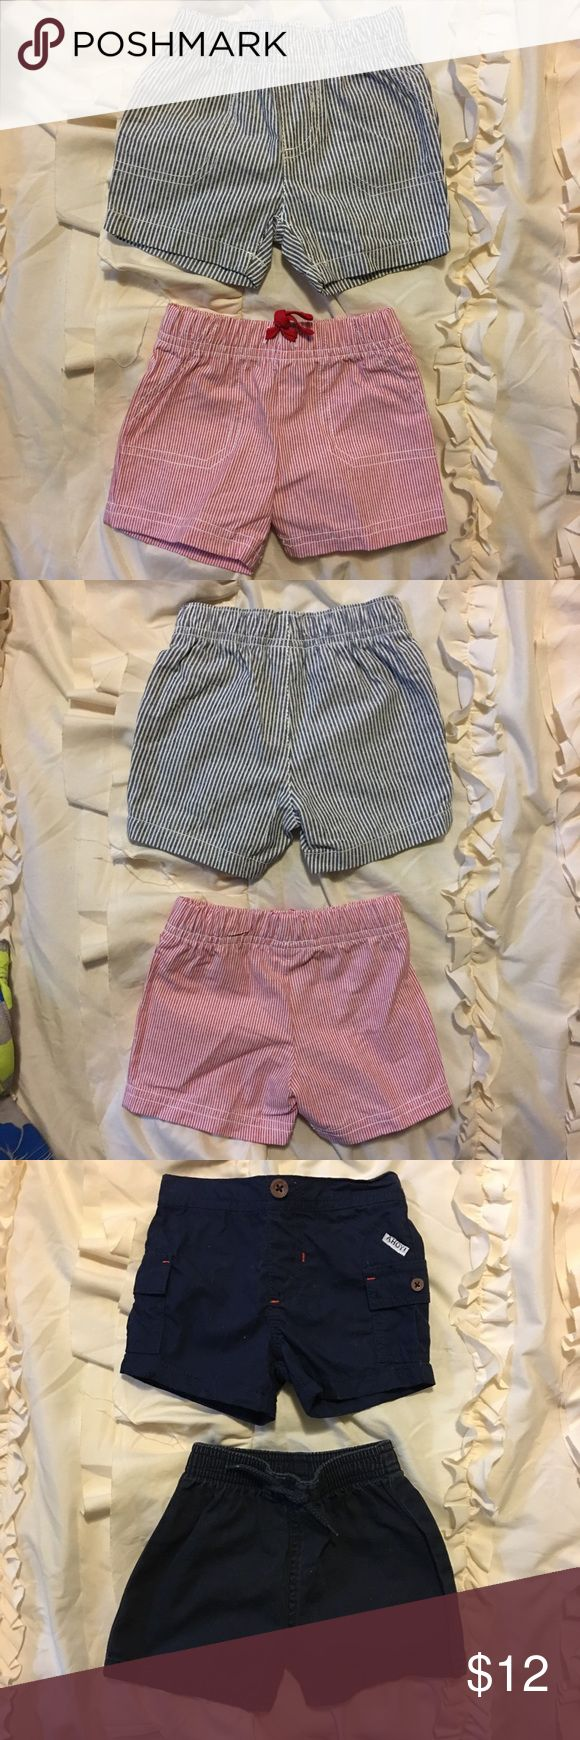 Four Pair of Baby Boy Shorts -- Sizes 3-6 Months Bundle of Baby Boy Shorts -- First and Second Picture -- Top Pair -- Carter's Blue Striped Shorts with Pockets -- Work Once -- Great Condition! Size 6 Months -- Bottom Pair -- Carter's Red Striped Shorts with Pockets and Tie in the Front -- Brand New -- Without Tags -- Never Worn! -- Size 6 Months -- Third and Fourth picture -- Top Pair Carter's Blue Shorts with Pockets -- Worn a Few Times -- Great Condition! Red Stitching Detail. -- Size 3…